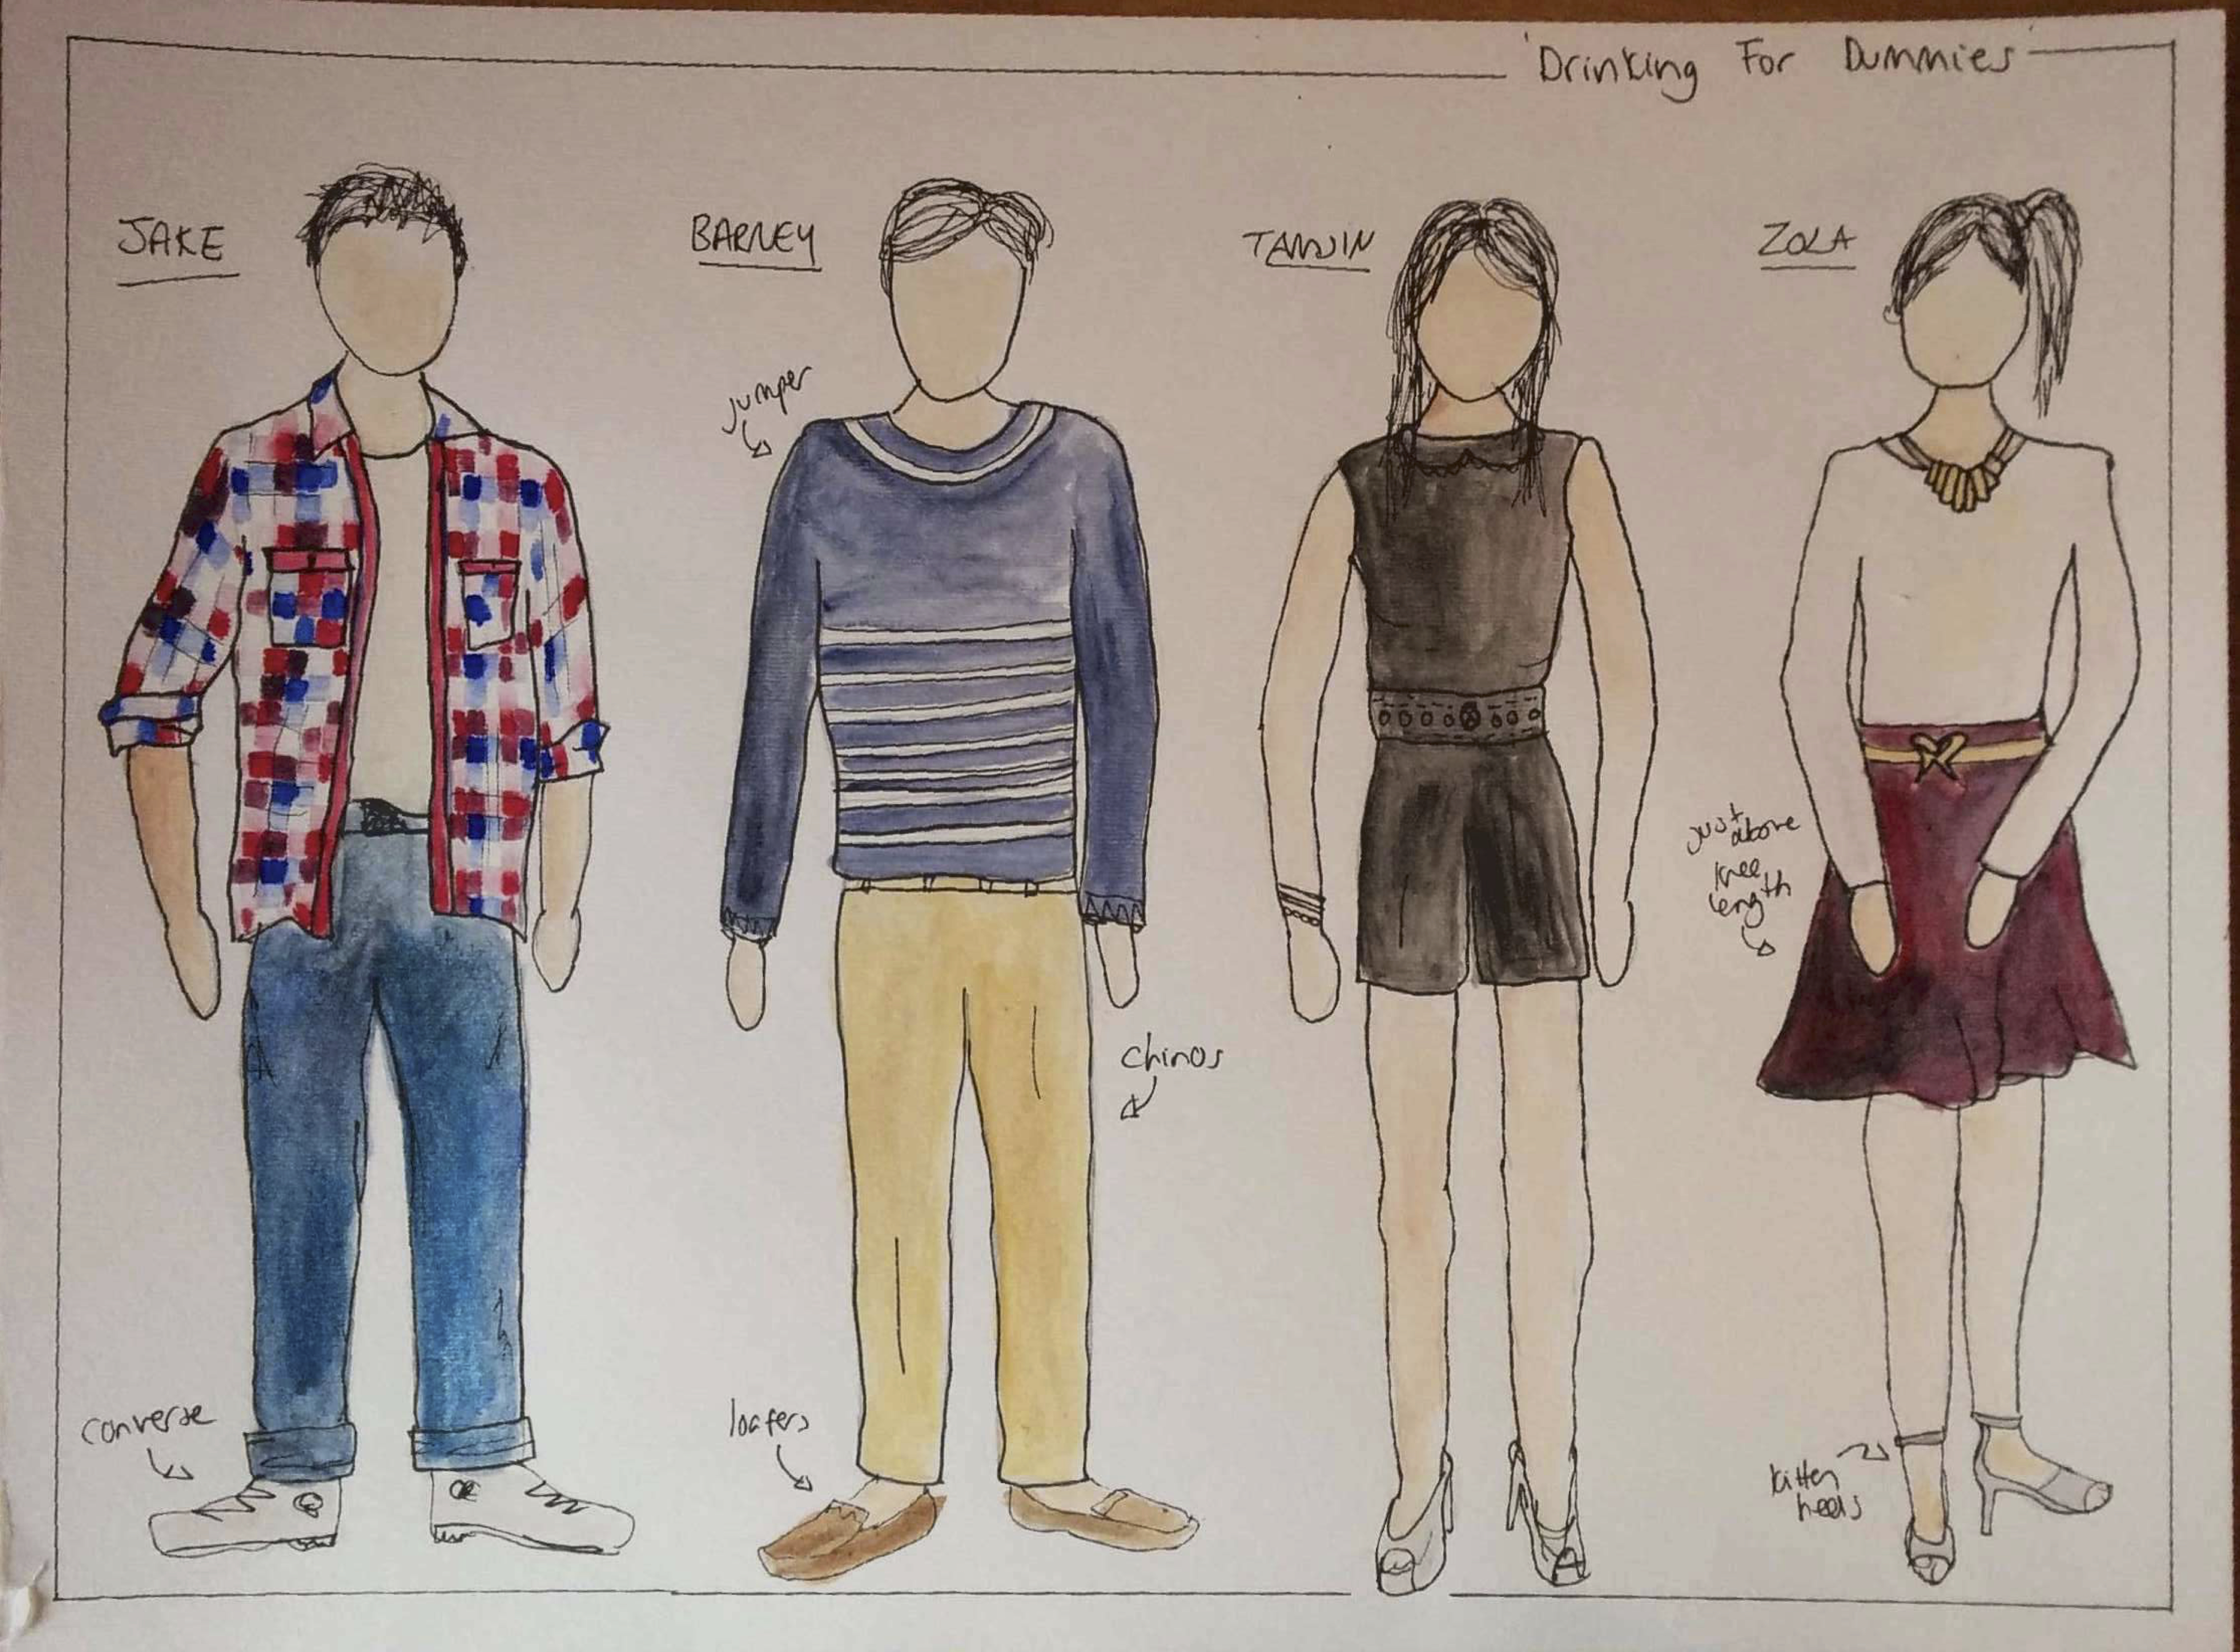 Drinking for Dummies Costume Design